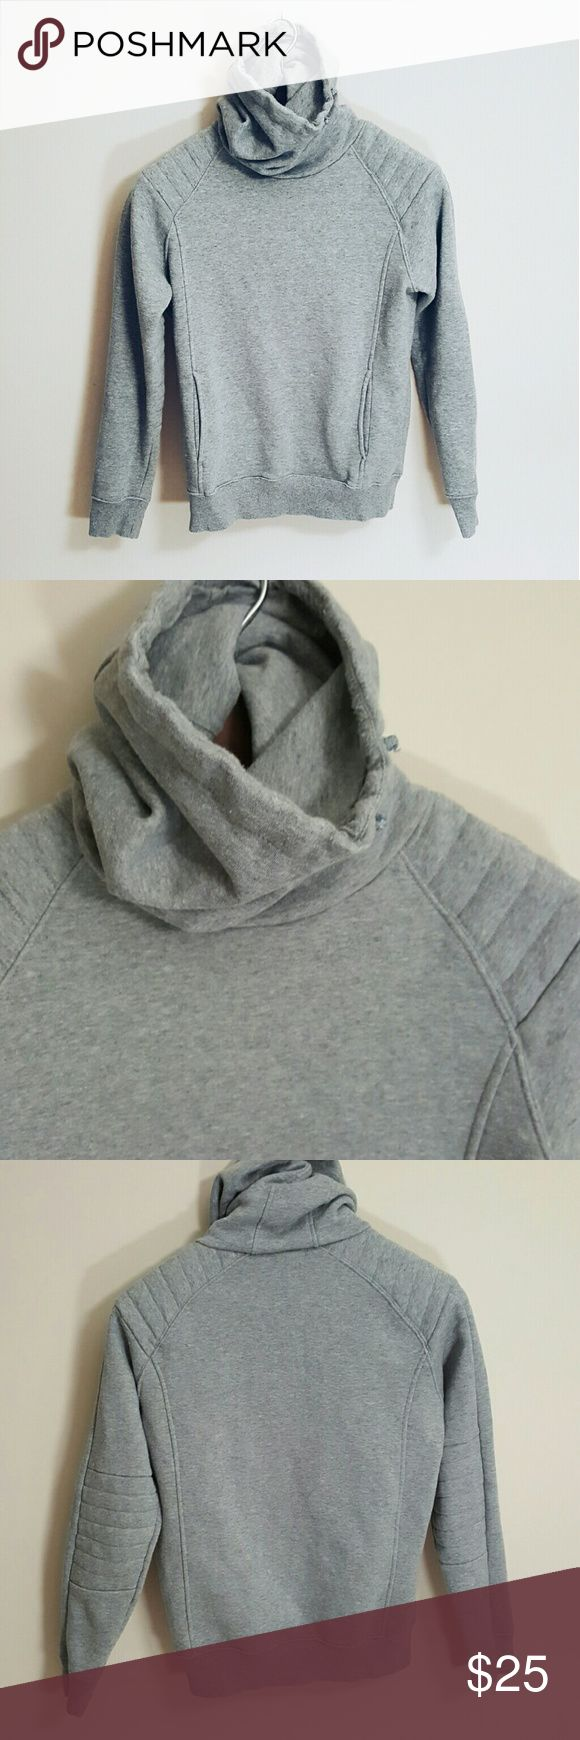 Structured cowl neck hoodie! S In good condition! H&M Gray structured cowl neck hoodie size small. Long fit. Elbow and shoulder detail!  Perfect to pair with your favorite pair of leggings or with a pair of white shorts this spring!  Bundle using the bundle feature and save! H&M Tops